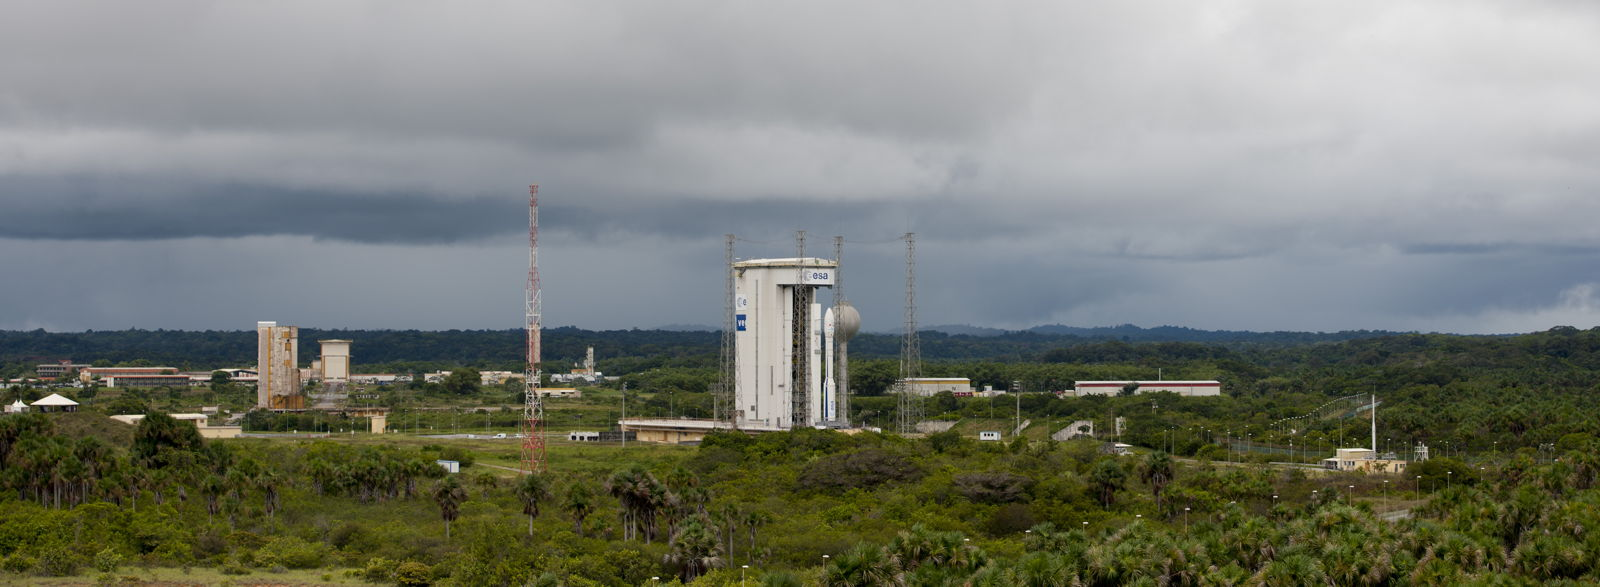 Fully Assembled Vega VV02 Rocket on Pad Panoramic View